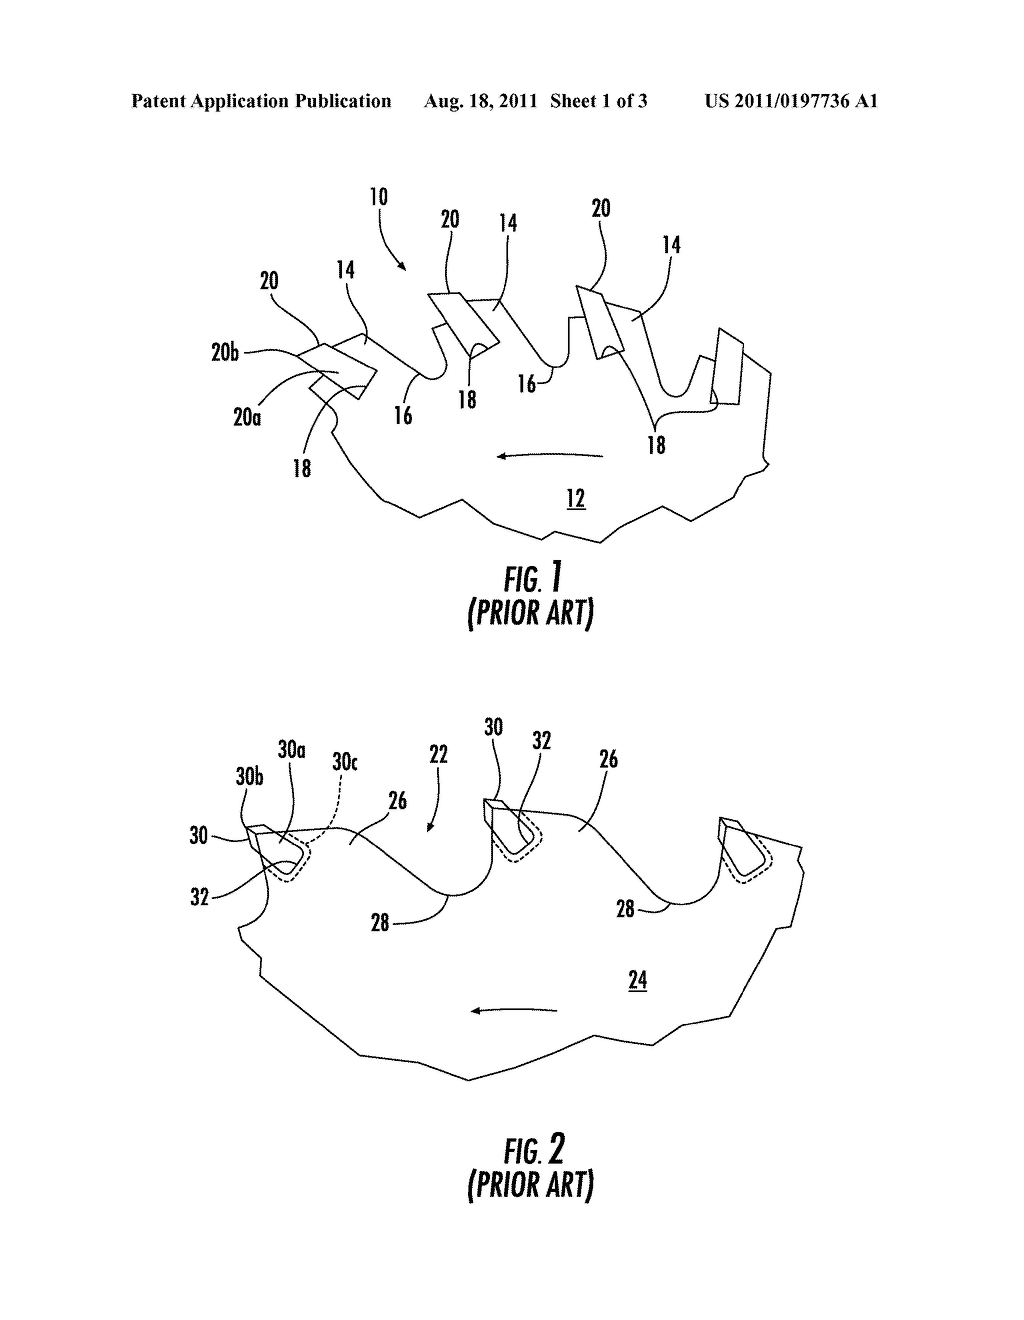 Circular Saw Blade With Cutting Tips Mechanically Locked Against Force Vector Diagram Multiple Vectors Schematic And Image 02